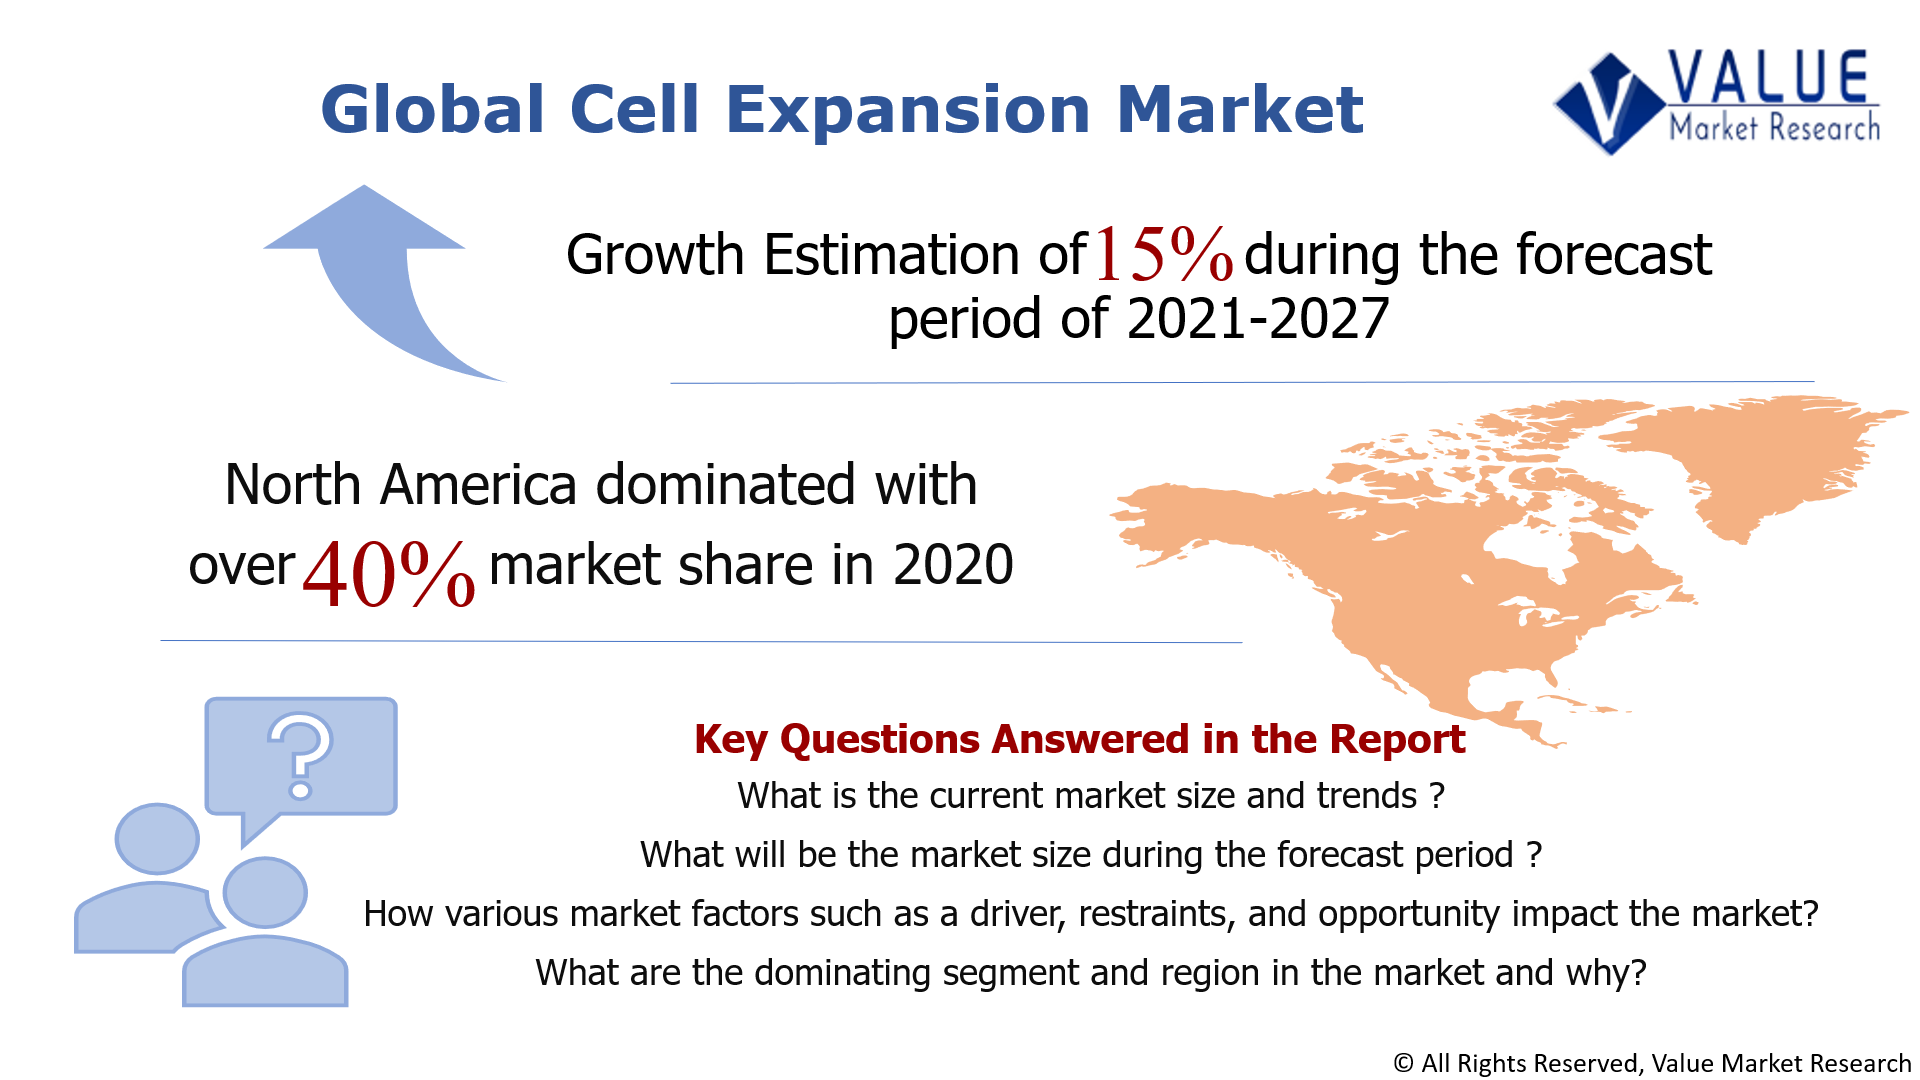 Global Cell Expansion Market Share